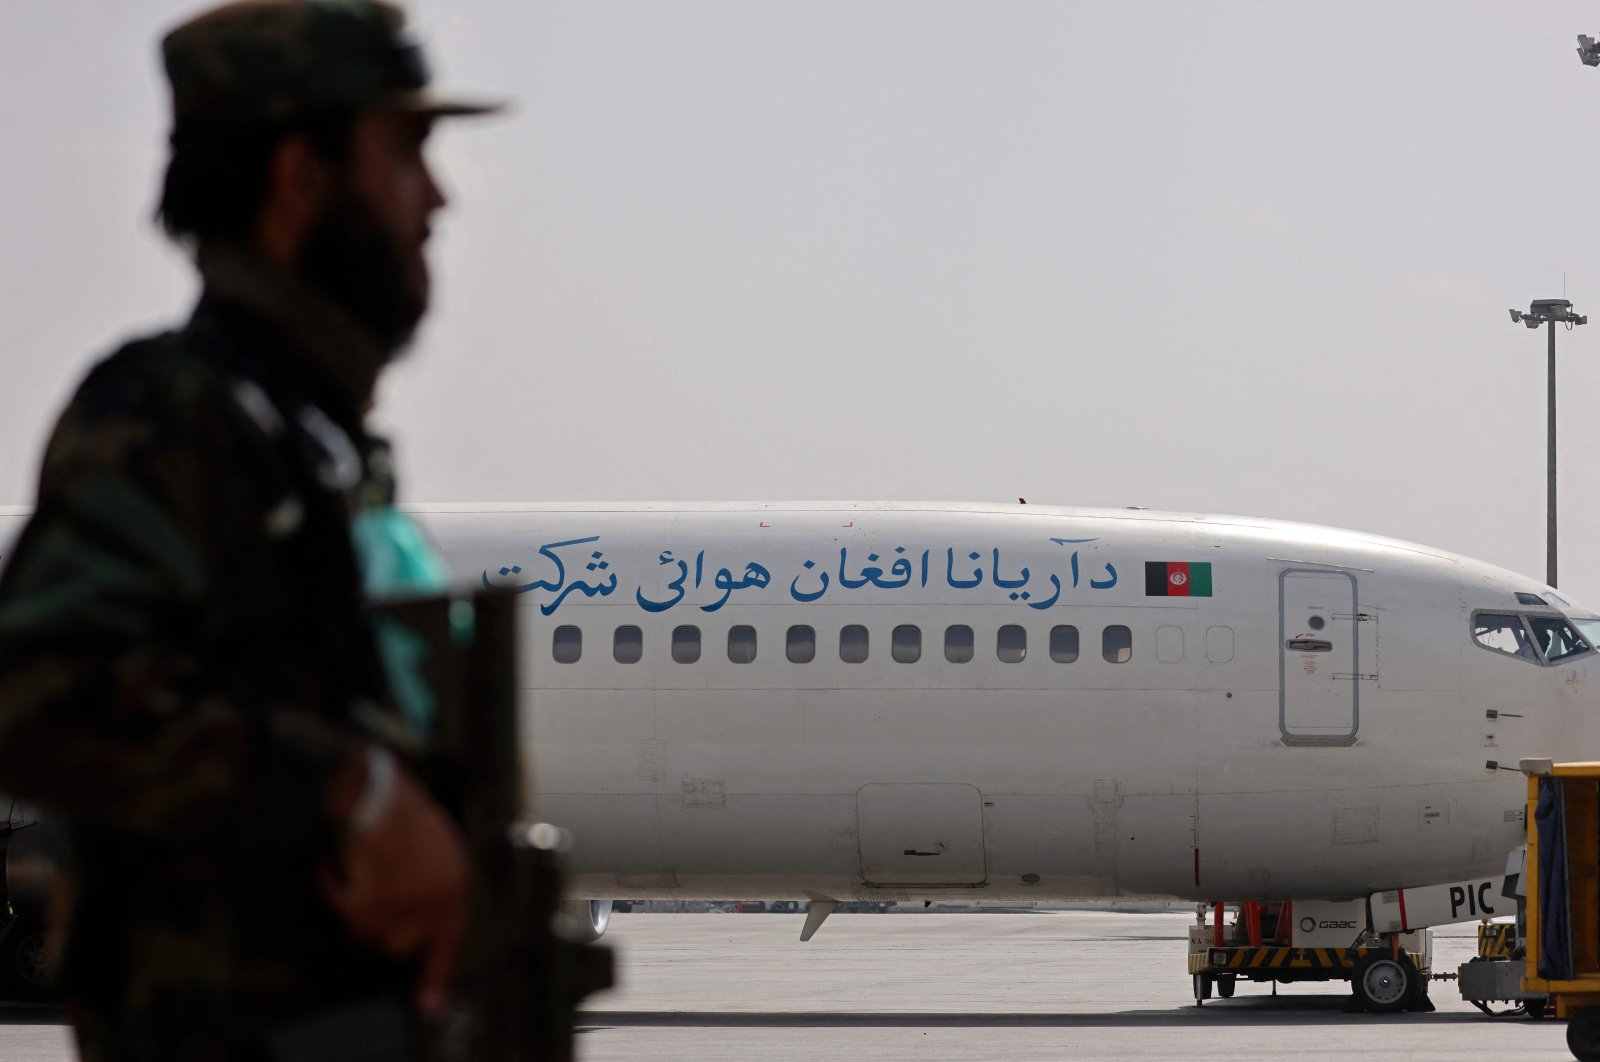 A Taliban fighter stands guard next to an Ariana Afghan Airlines aircraft on the tarmac at the airport in Kabul, Afghanistan, Sept. 12, 2021. (AFP Photo)